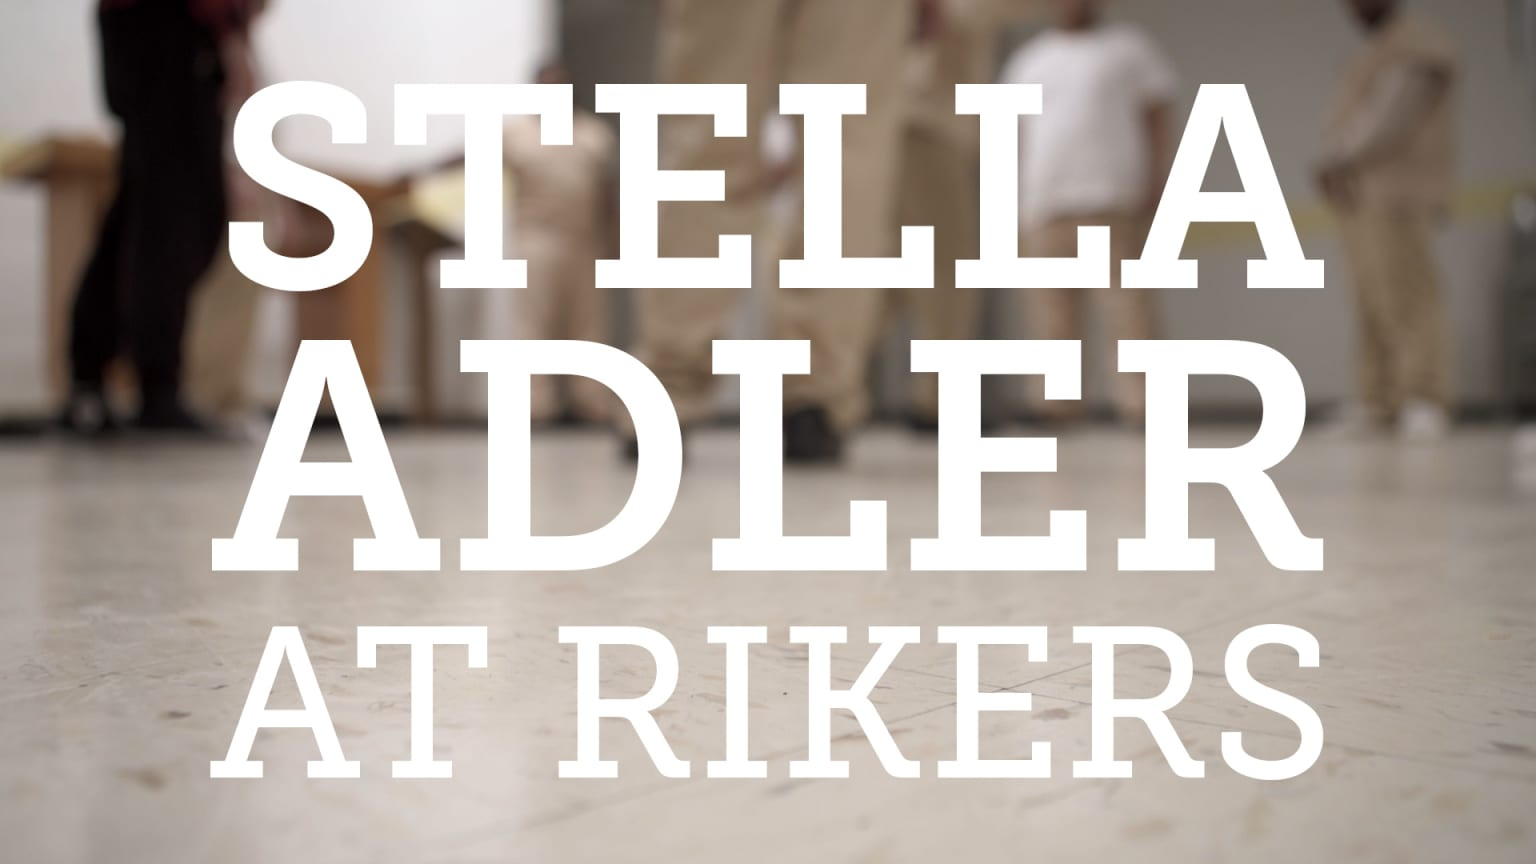 Stella Adler at Rikers